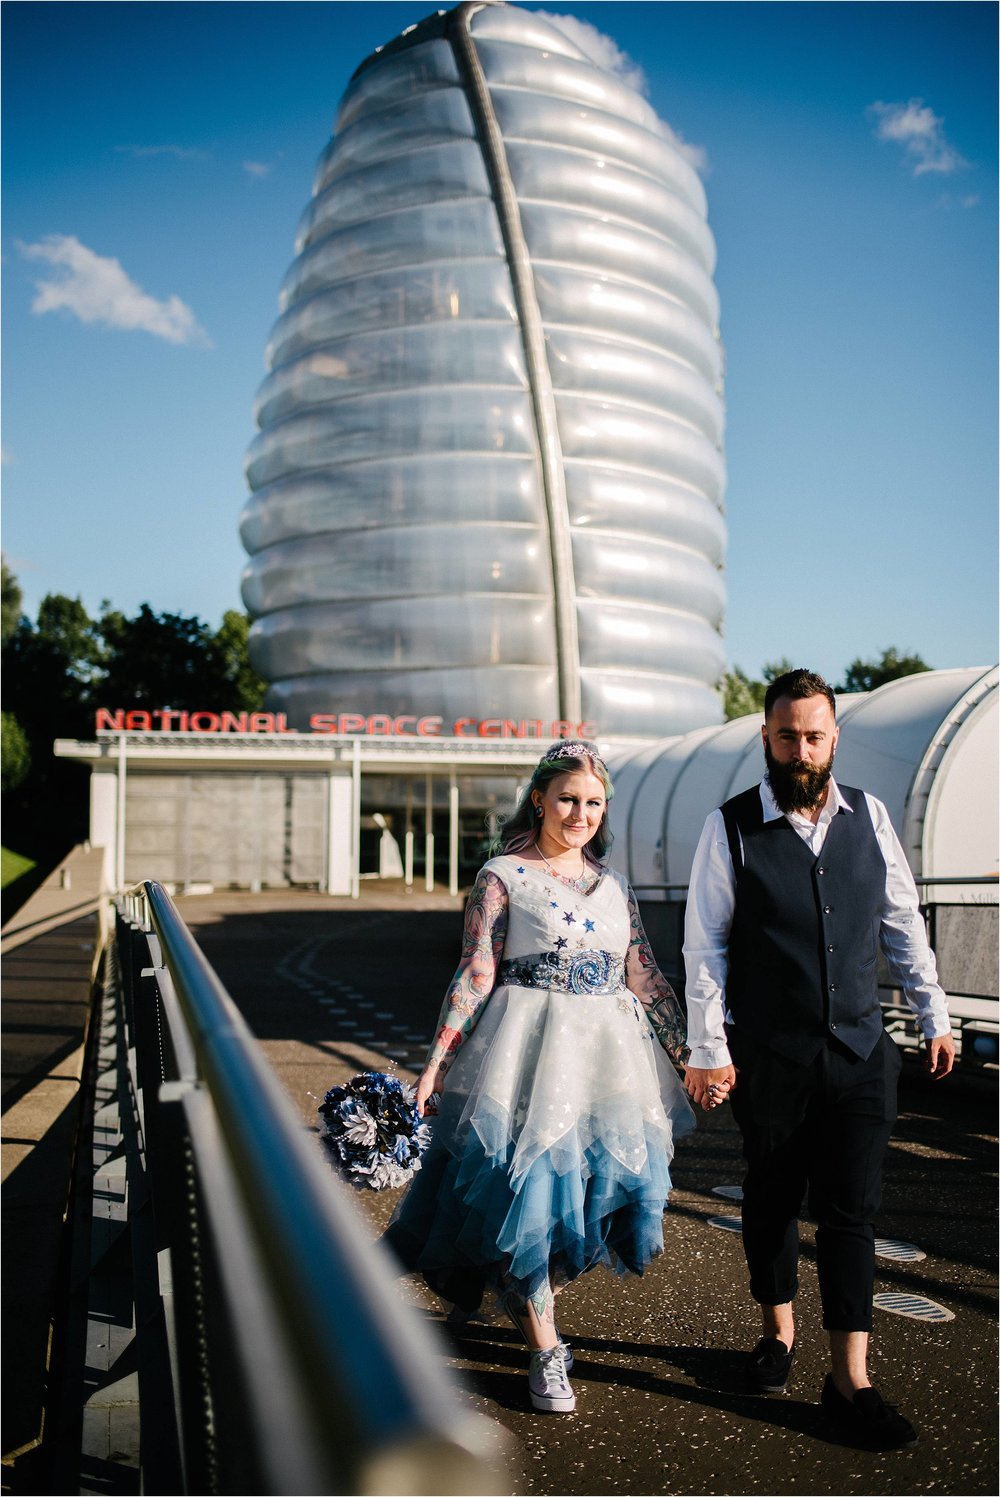 National Space Centre Wedding Photography_0057.jpg